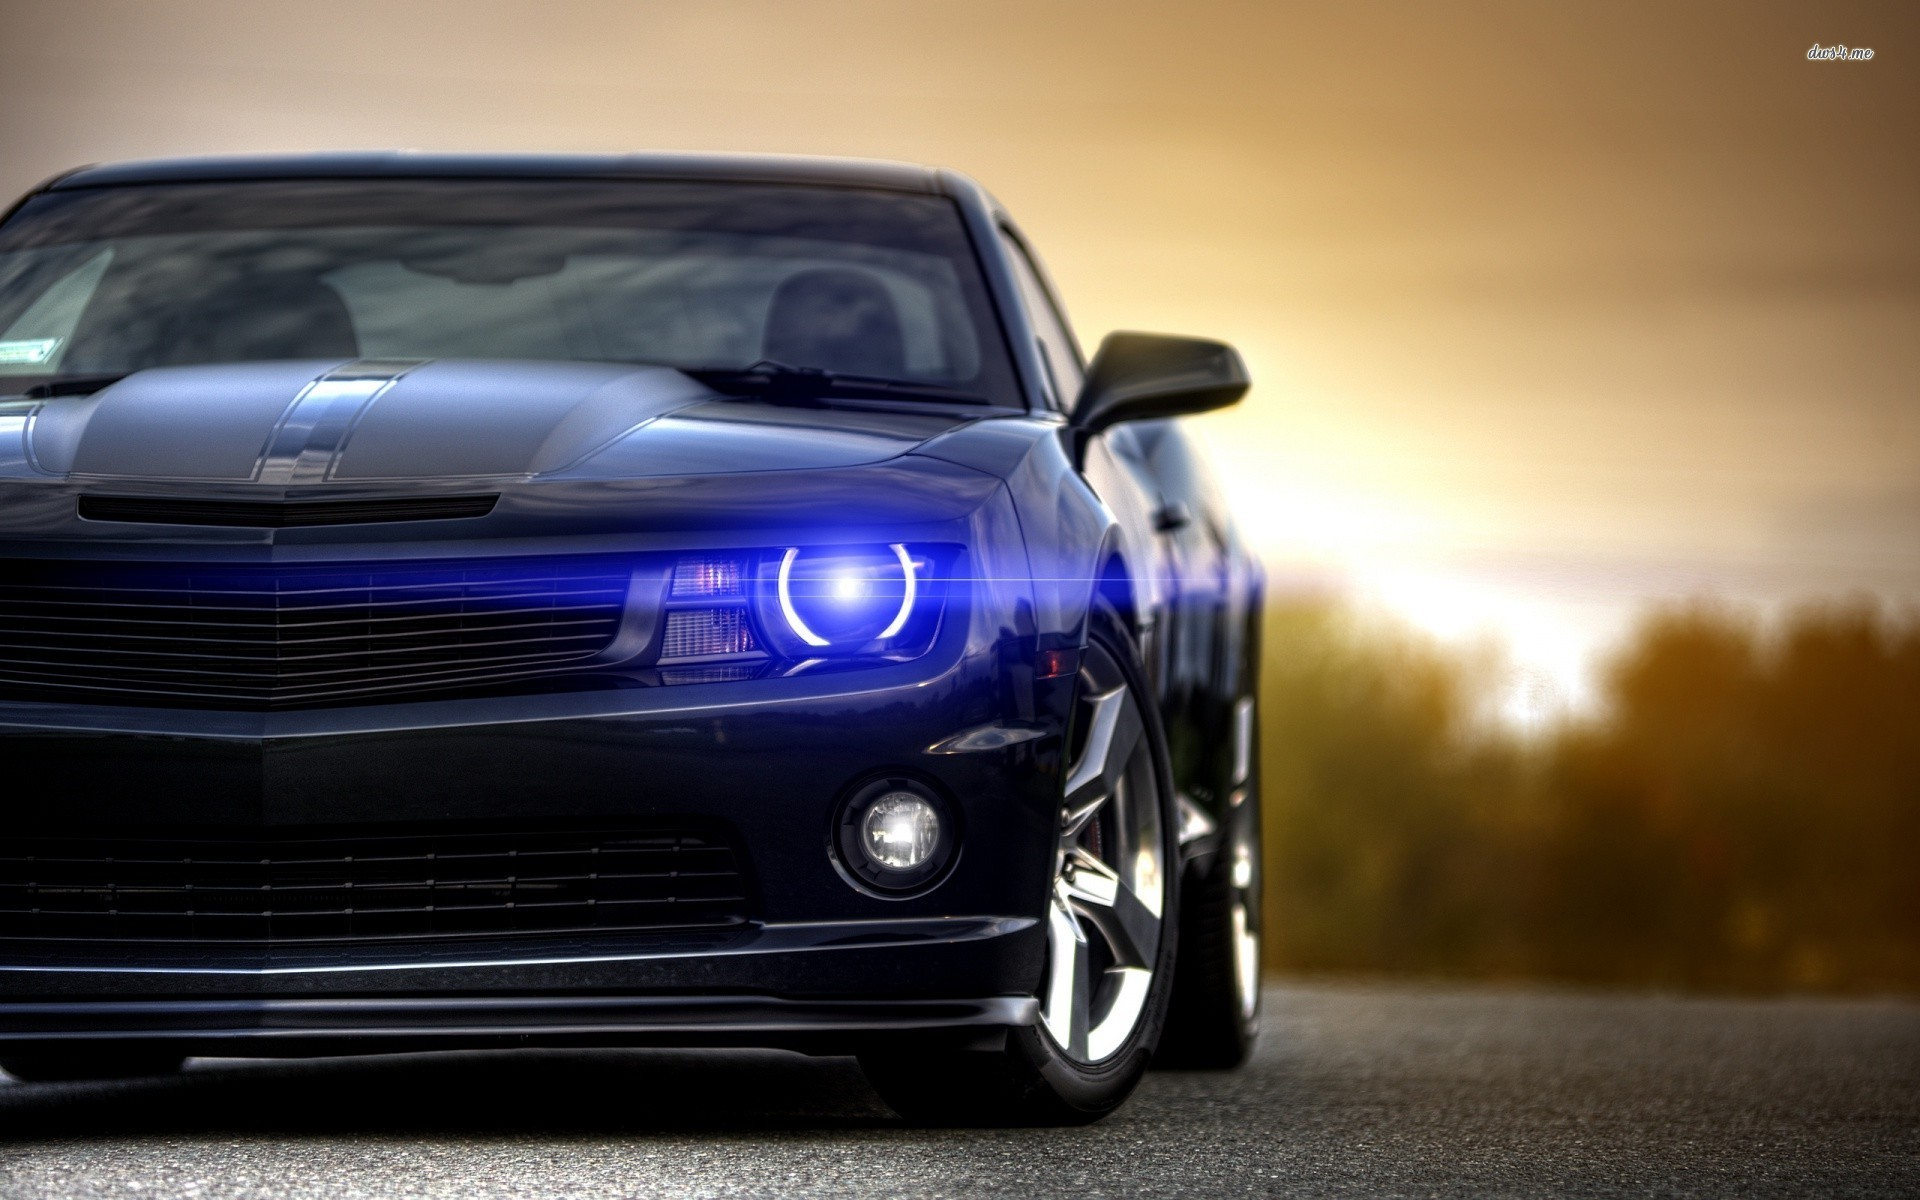 Download Monster Chevrolet Camaro High quality wallpaper 1920x1200